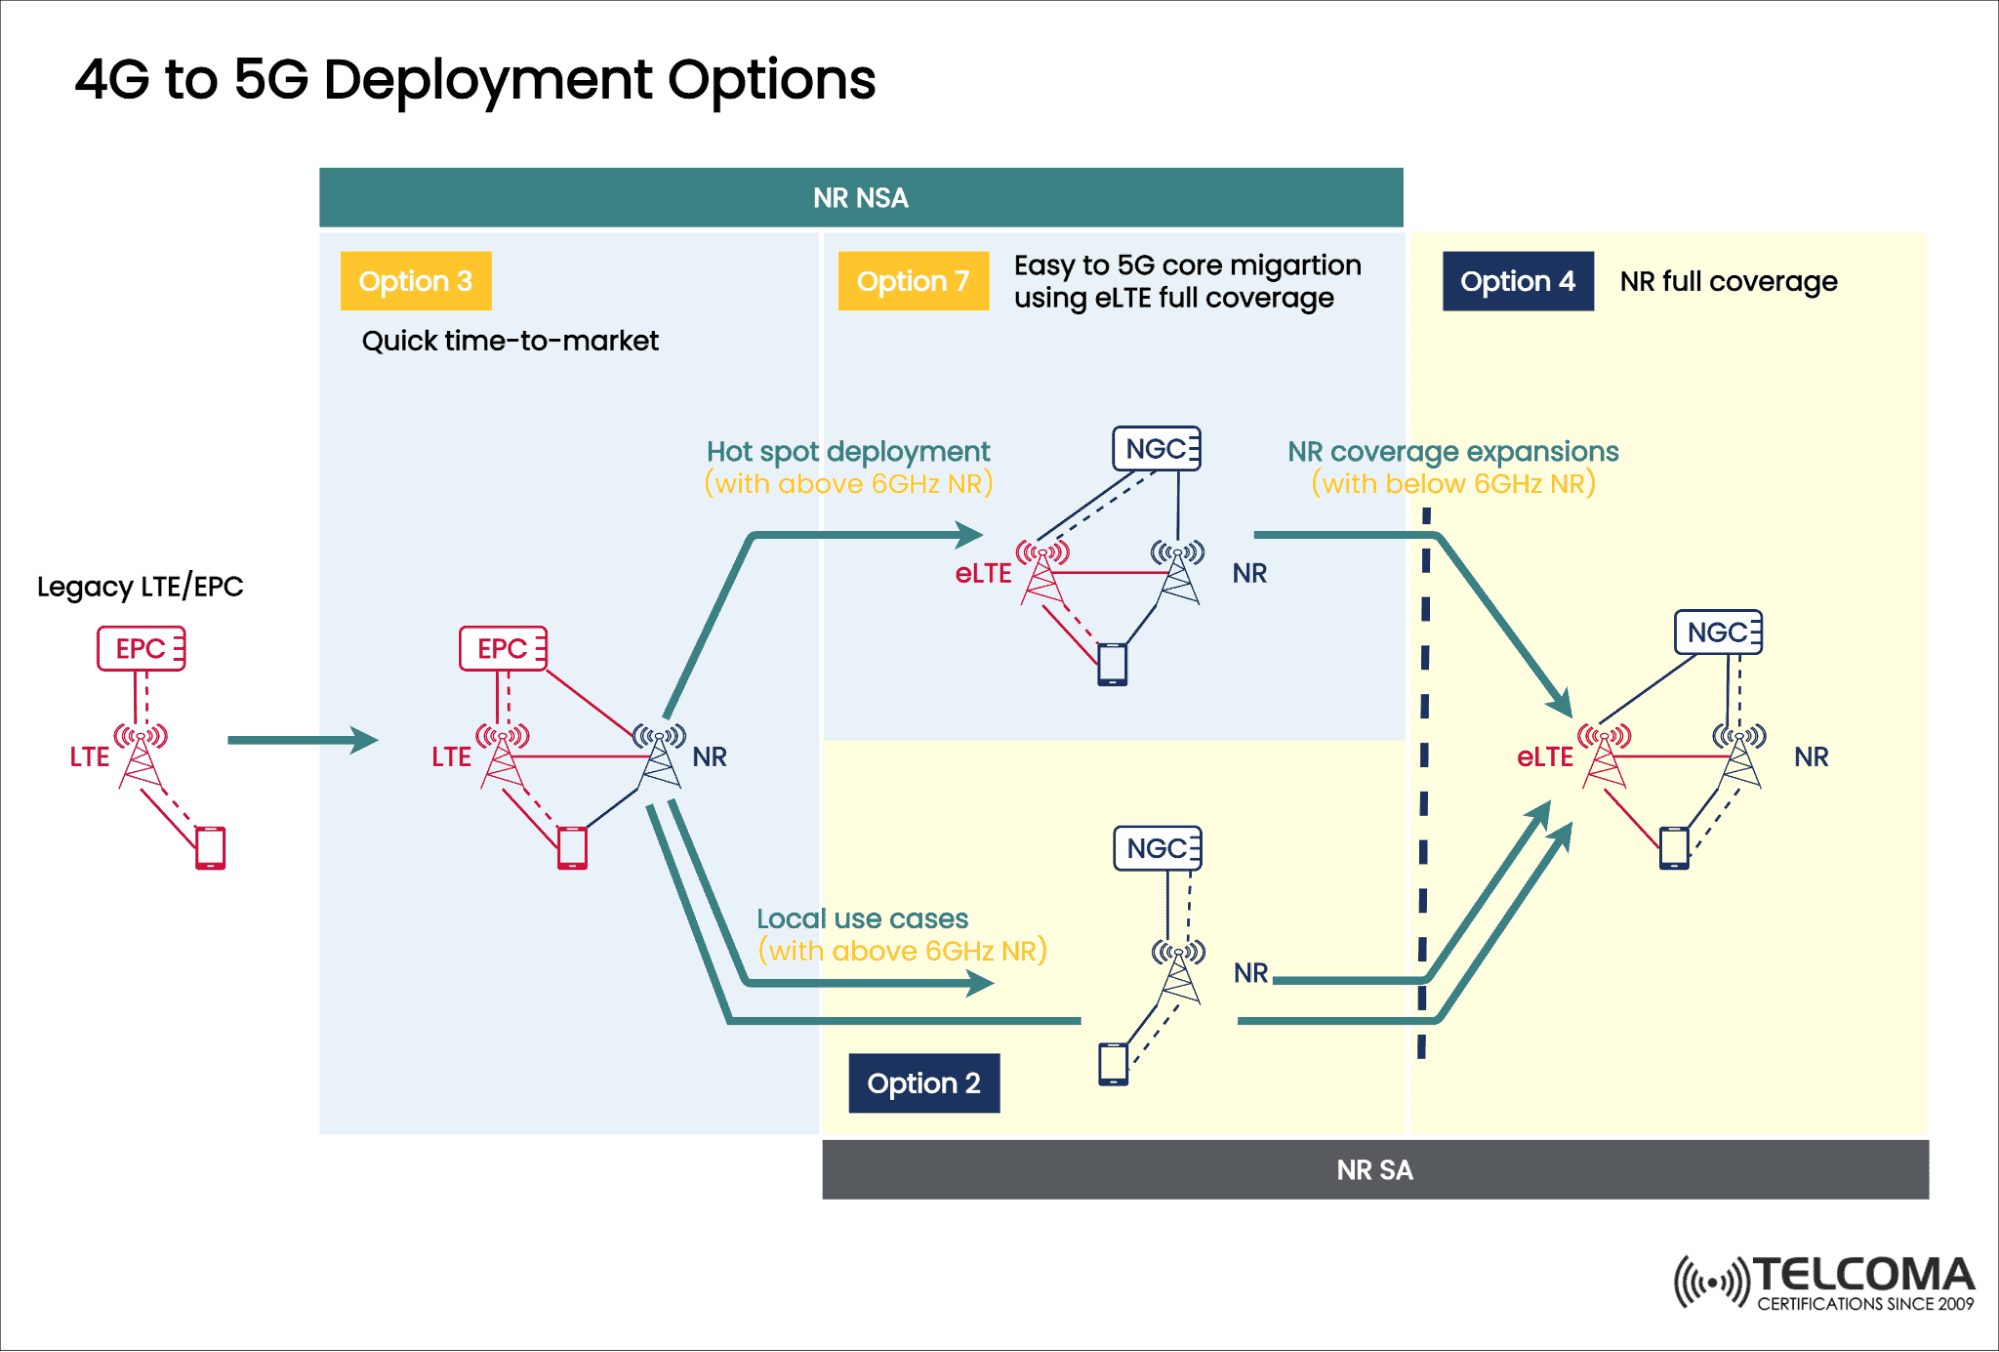 4g to 5g deployment options